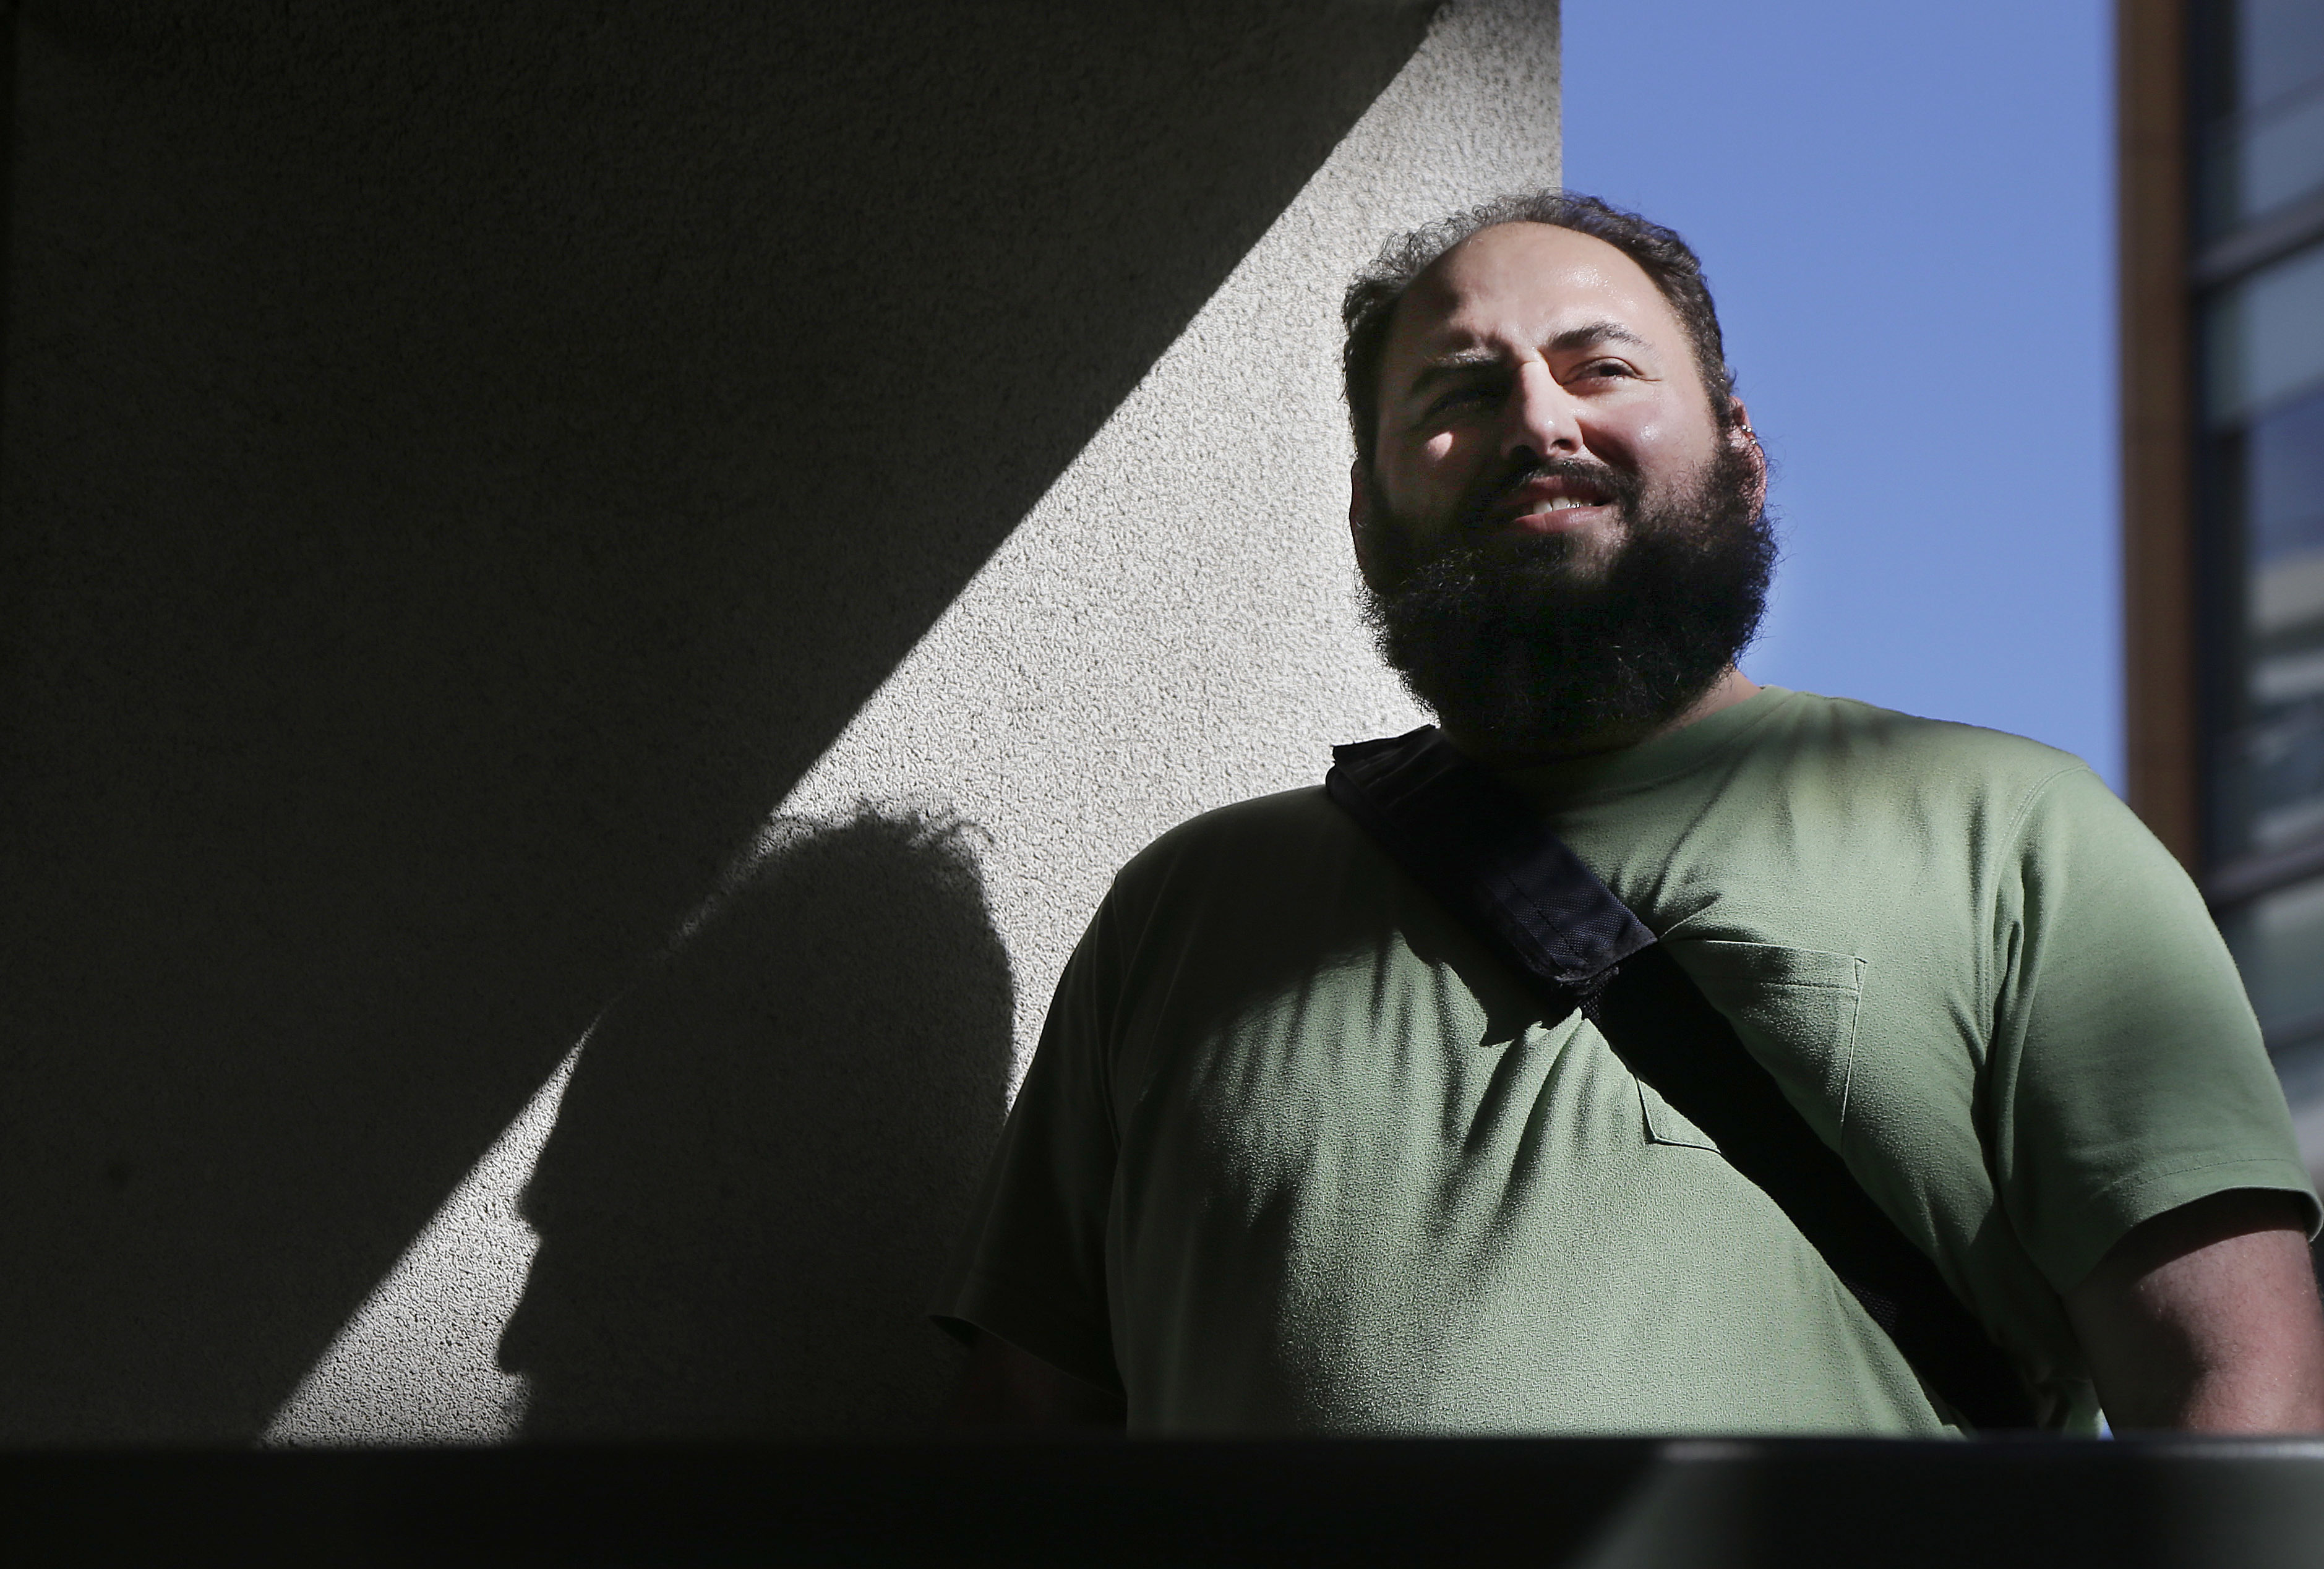 FILE - Software engineer Laurence Berland poses for a photo in San Francisco, California, March 7, 2017.